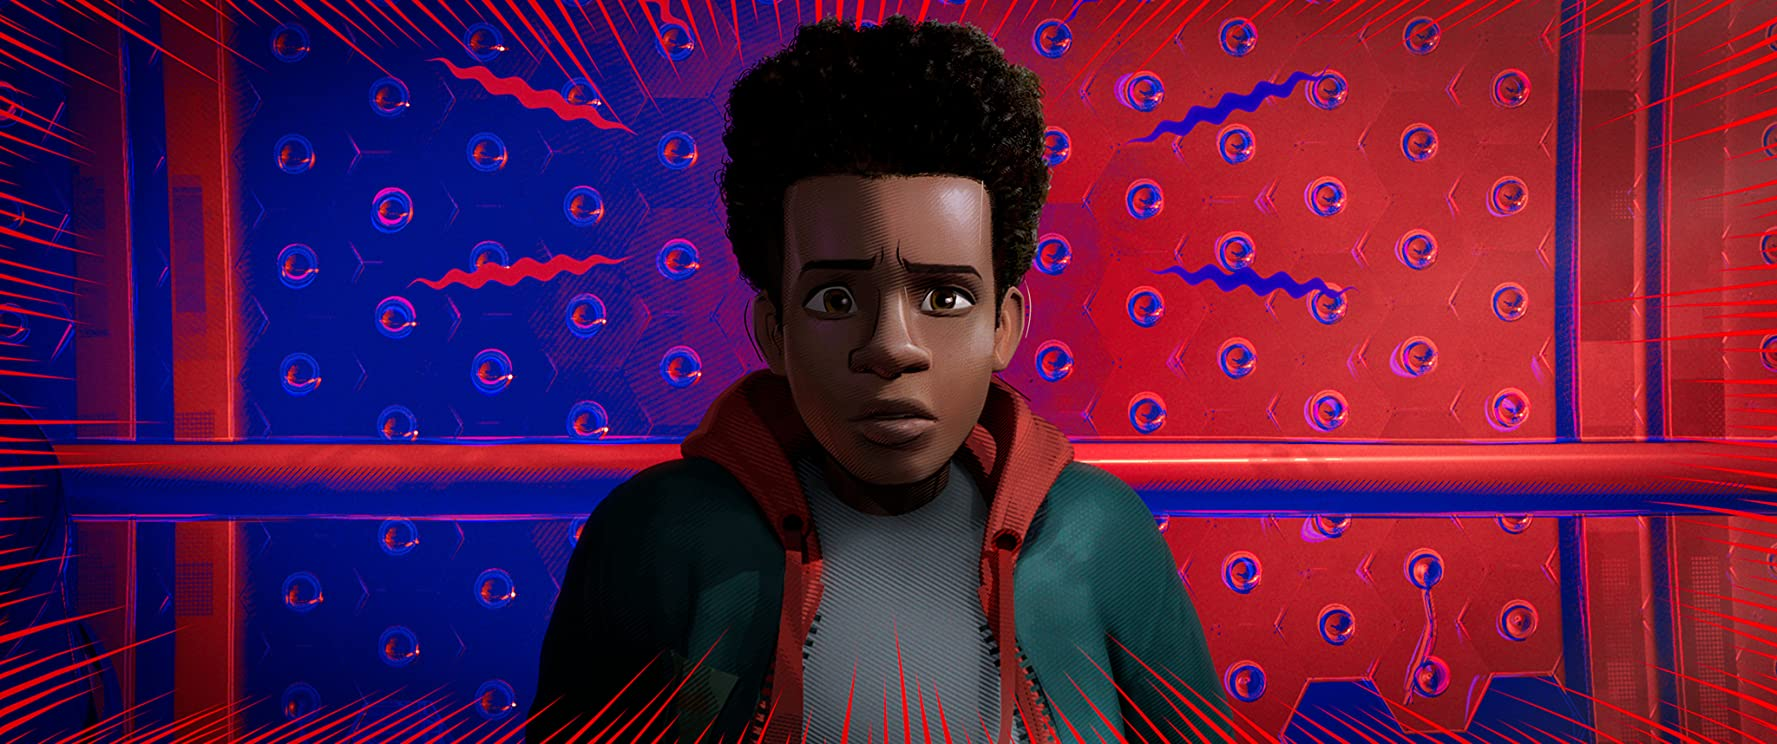 Spider-Man: Into the Spider-Verse / Sony Pictures. © 2019. All rights reserved.